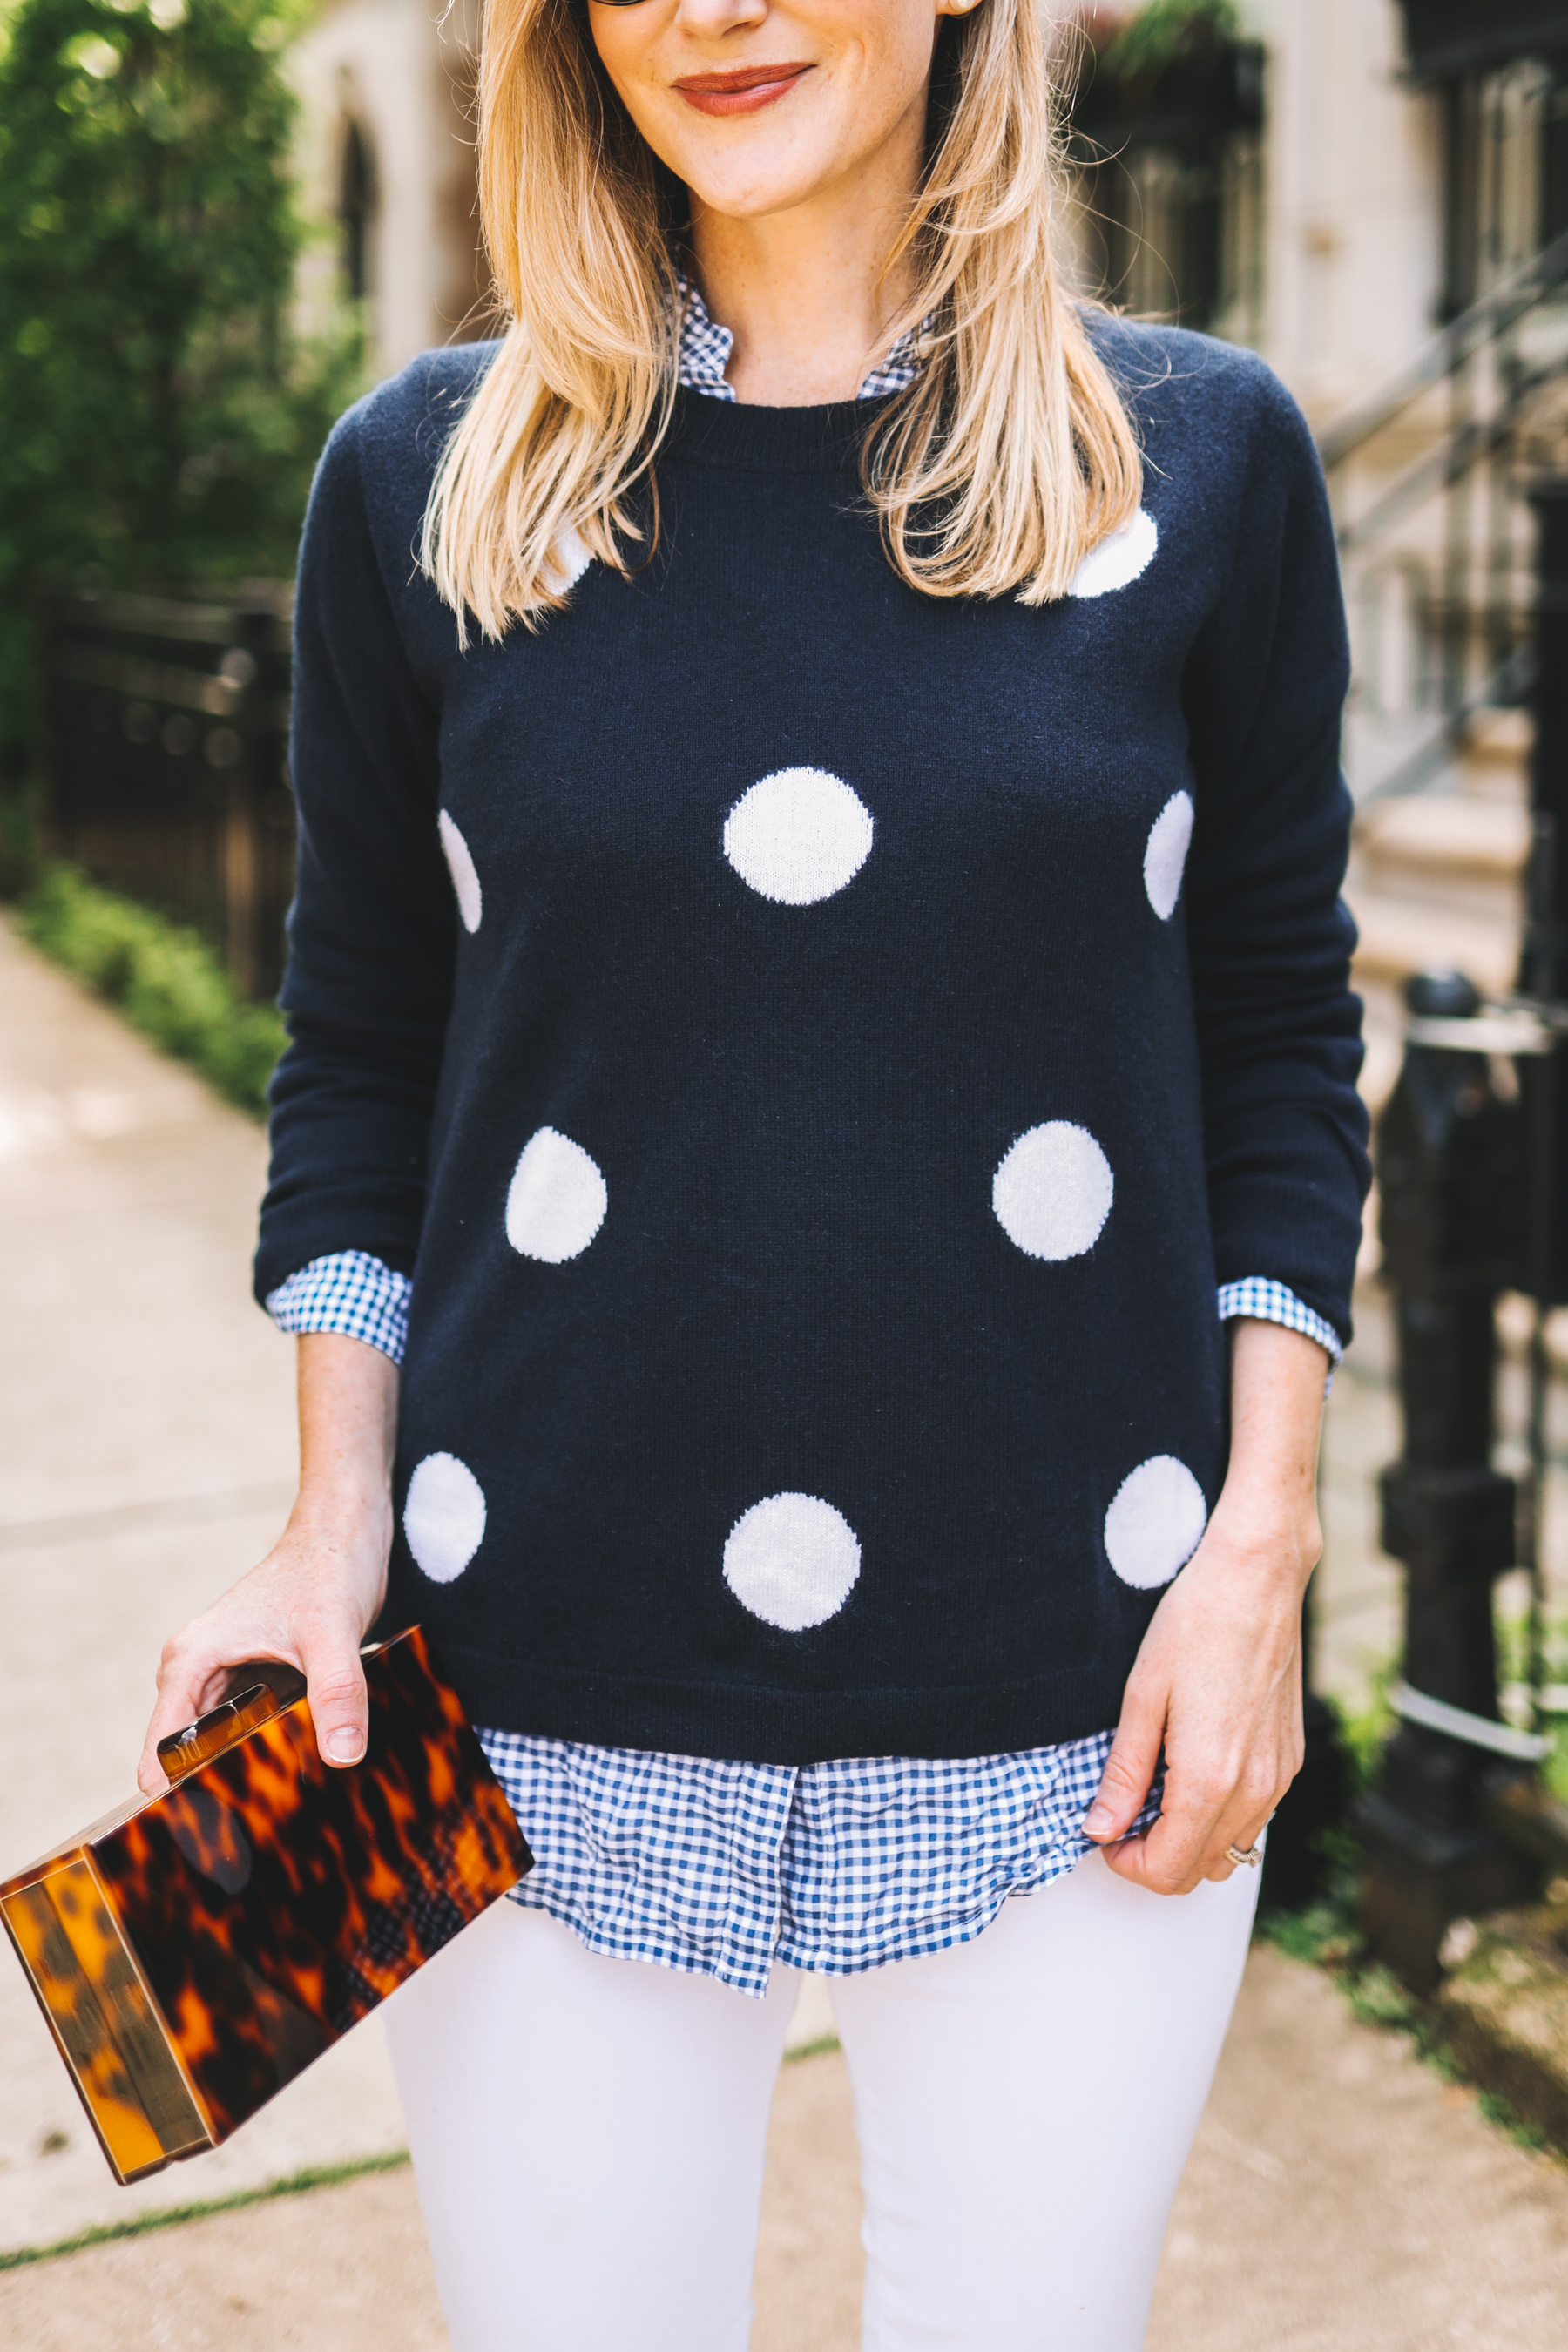 Kelly Larkin's outfit details: Tortoise Clutch / Favorite White Jeans  / Navy Polka Dot Sweater / Tortoise Clutch / Gingham Button-Down